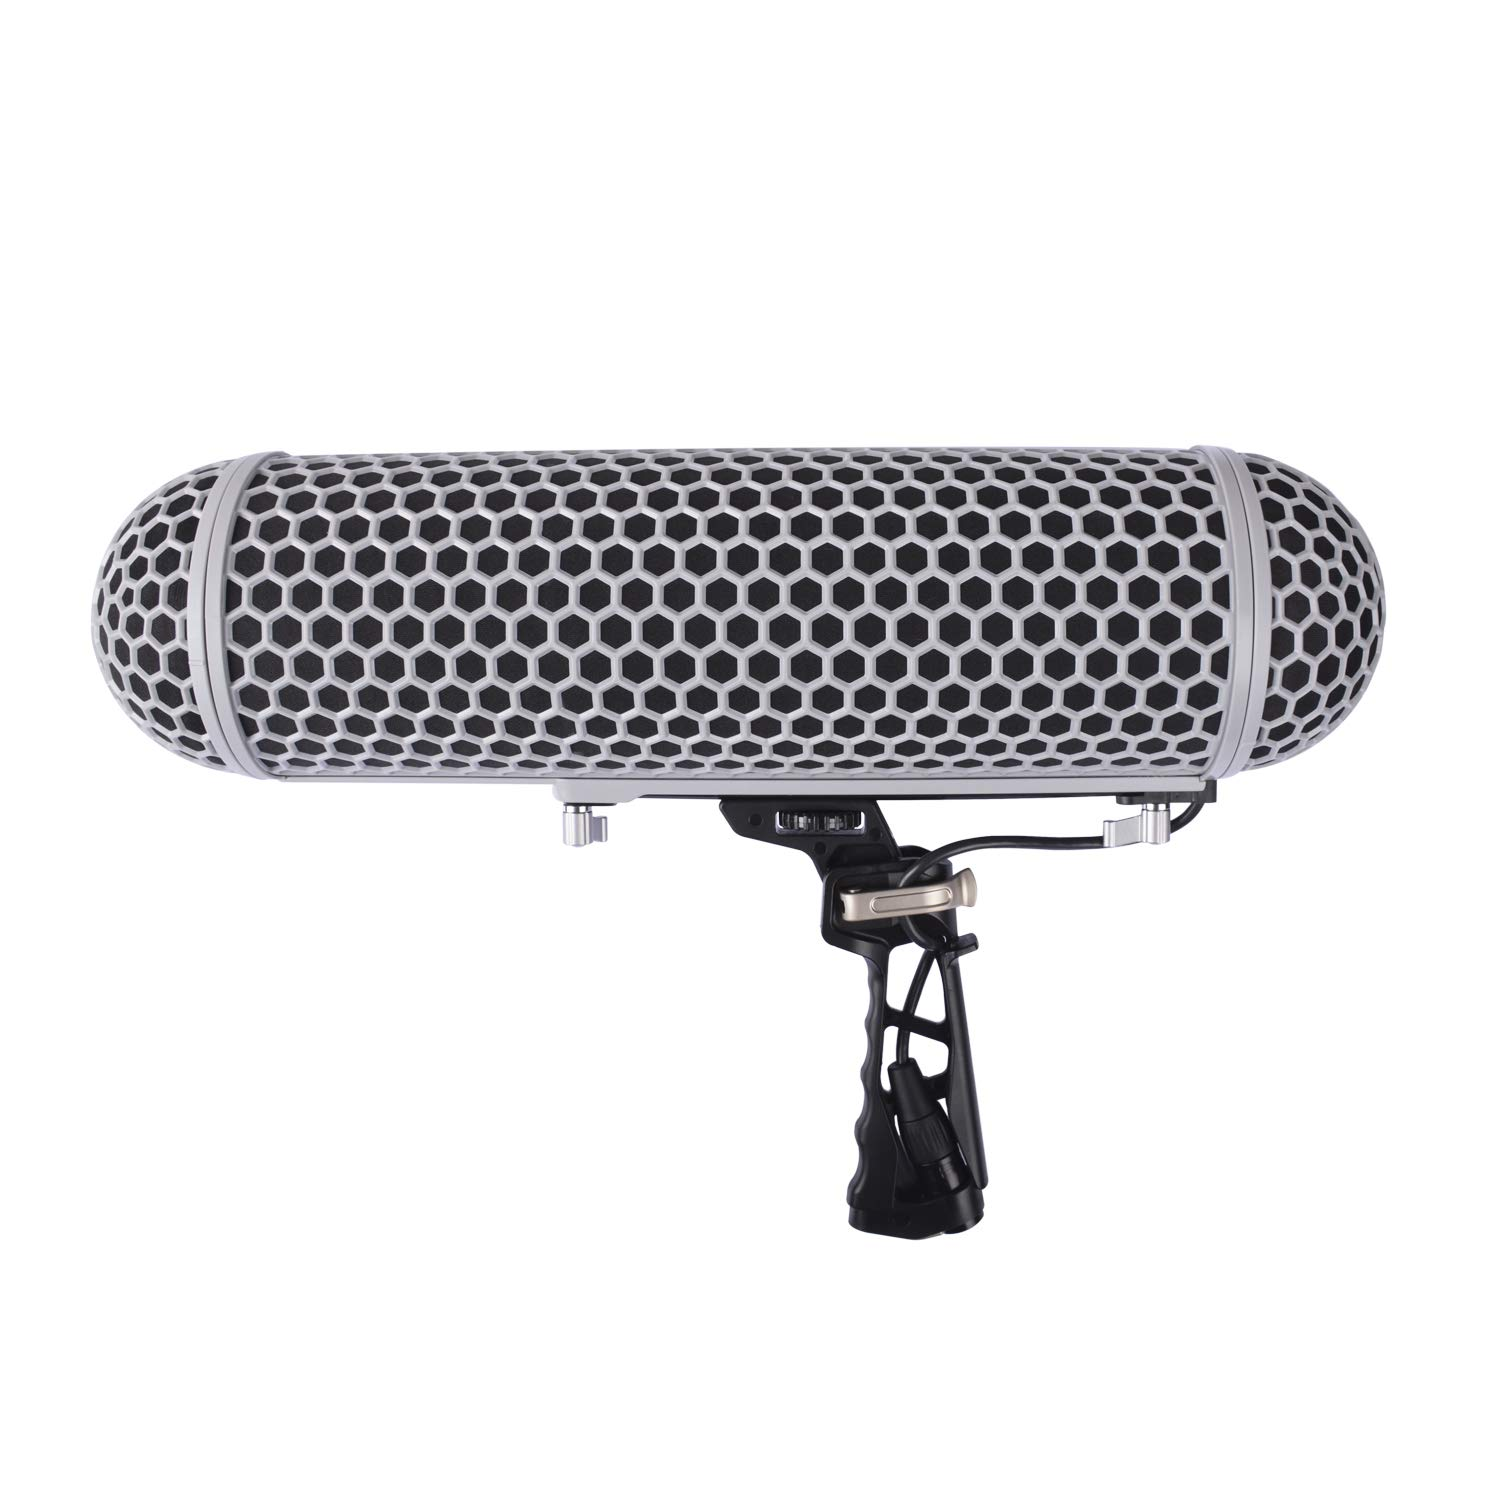 Micolive Microphone Windshield Blimp Windscreen Style Protect Cage and Rycote Shock Mount Suspension System Compatible with Rode NTG1 NTG2 NTG3 NTG4 AT875R Line MKE 600 Series Shotgun Microphones etc by DF DIGITALFOTO